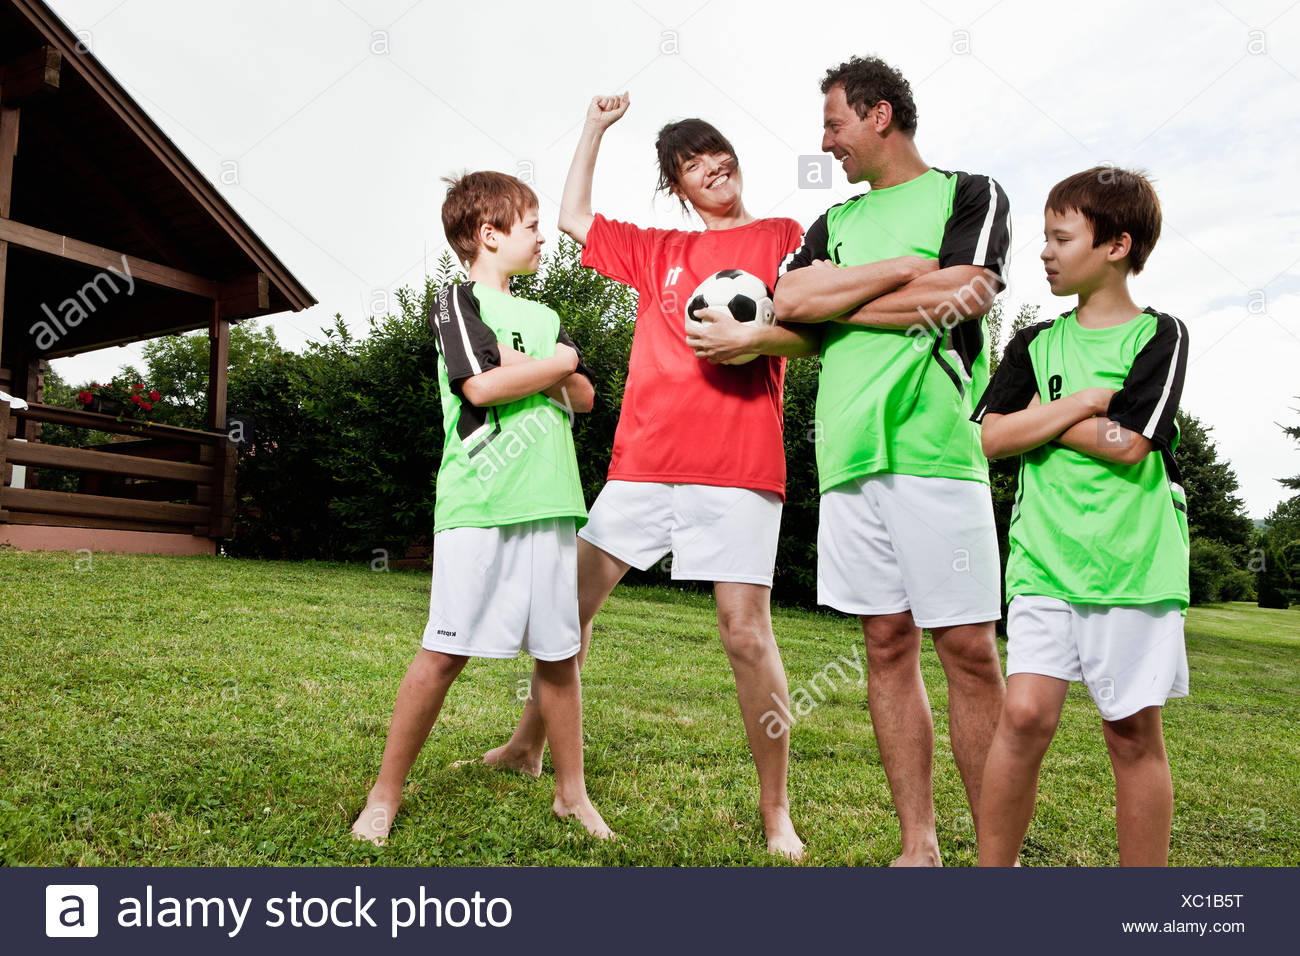 Mother celebrating different team - Stock Image